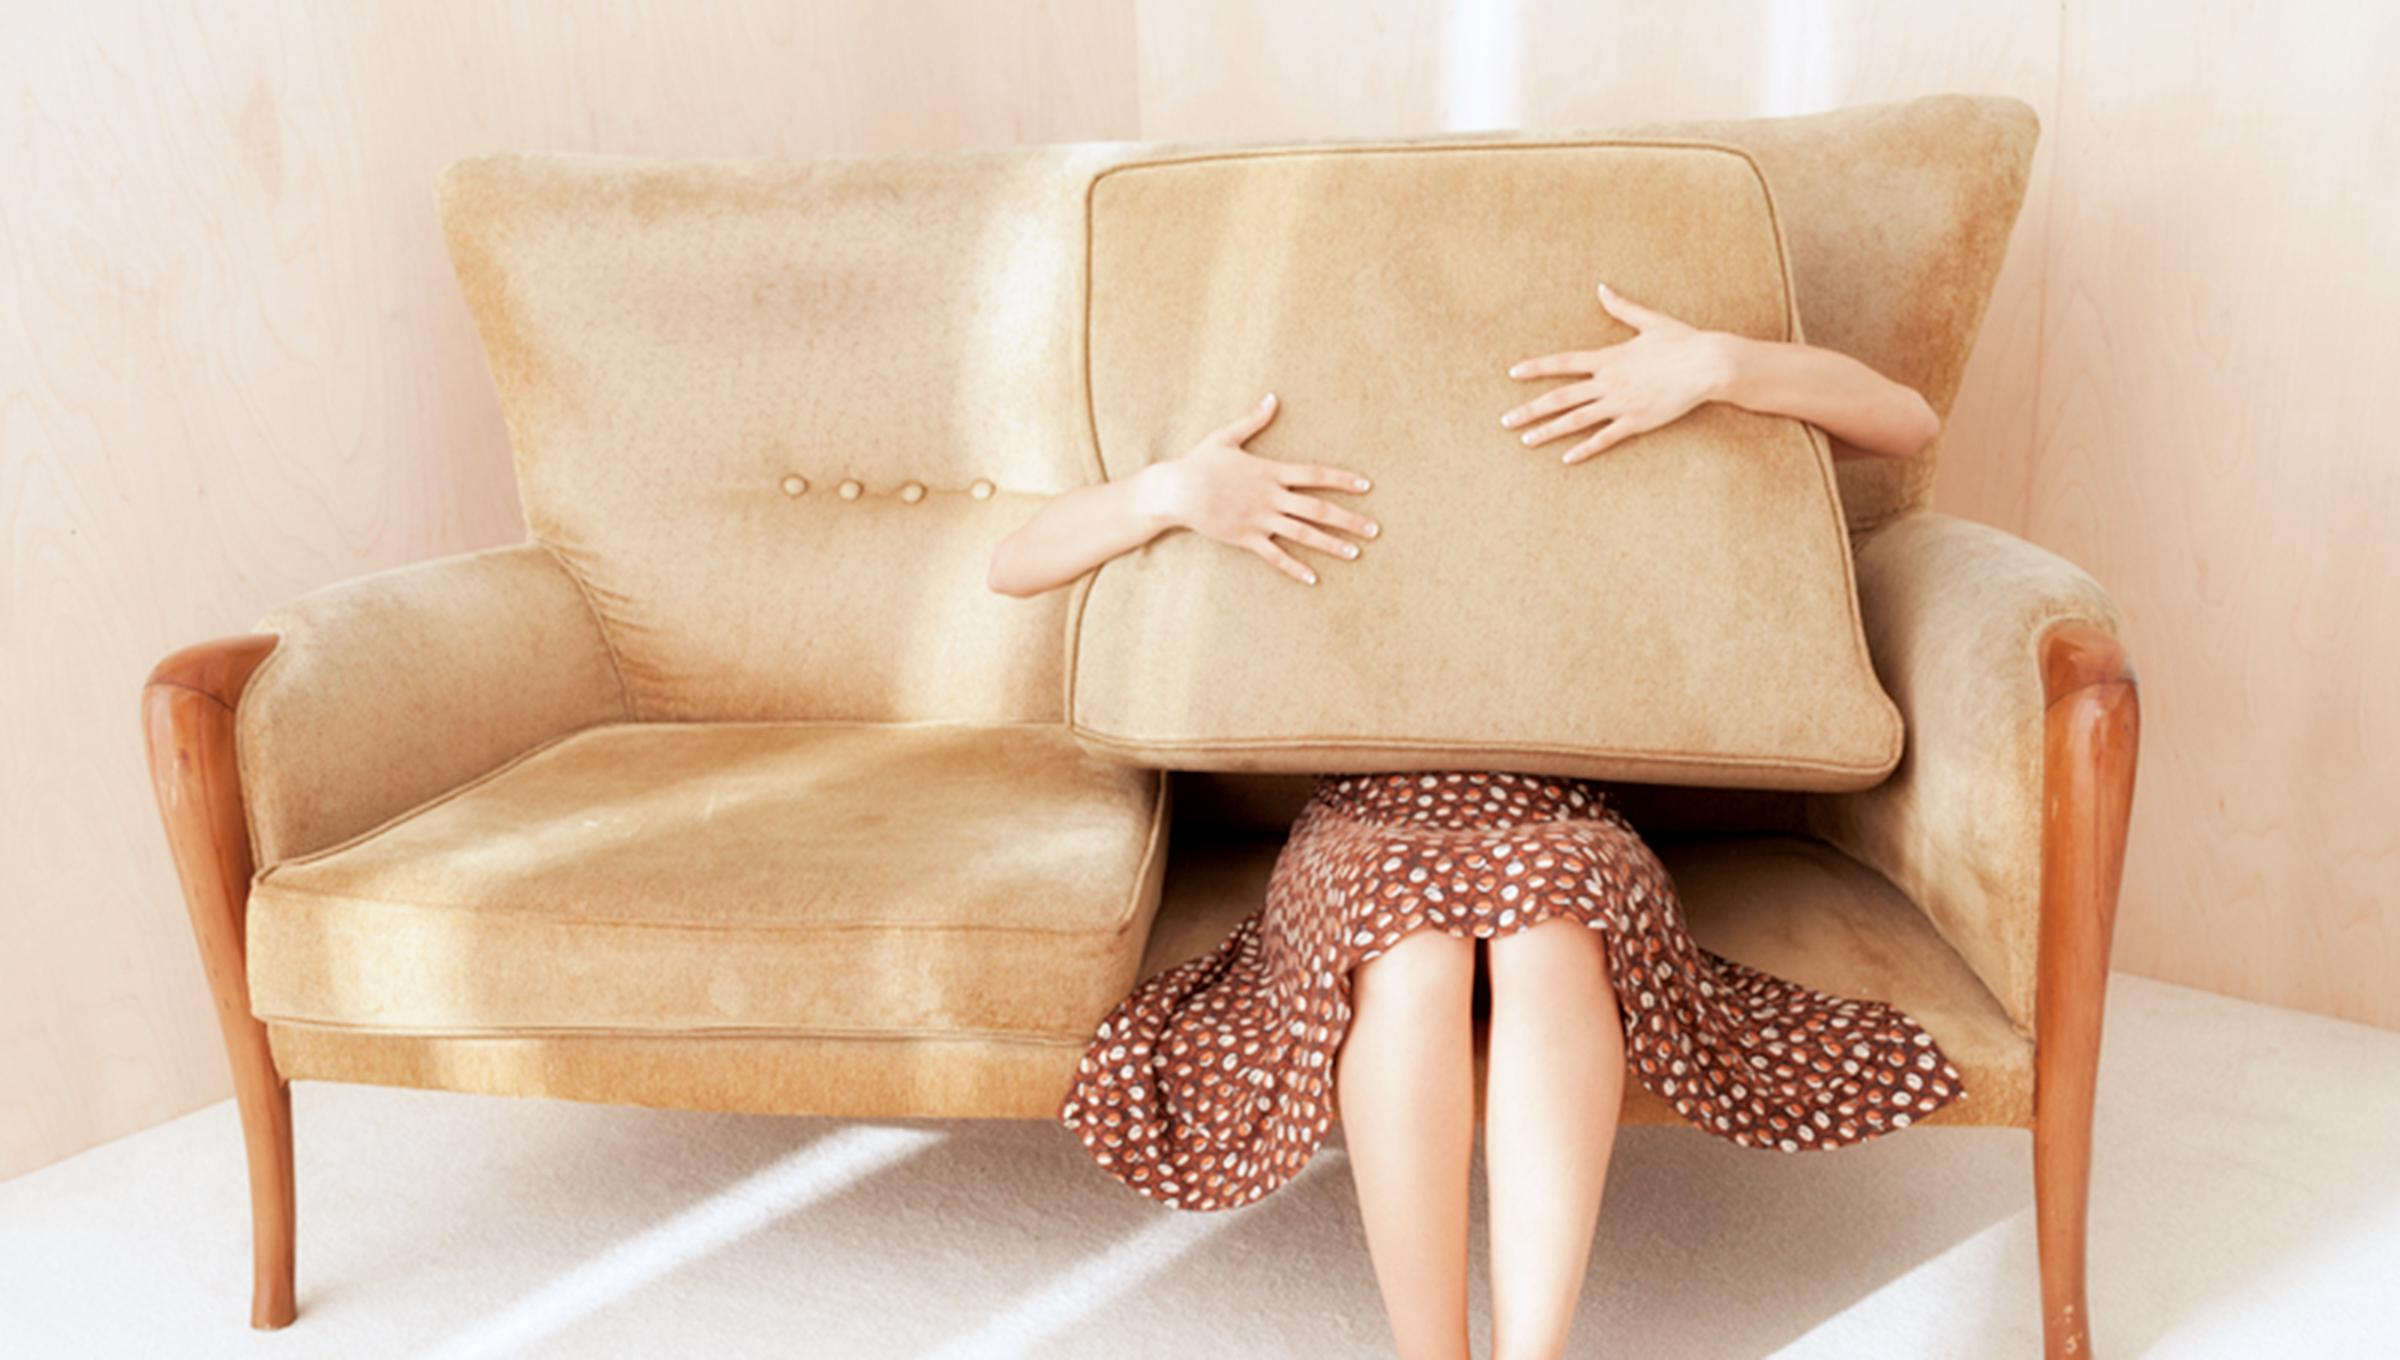 A woman sits on a couch holding a pillow over her upper body and face.